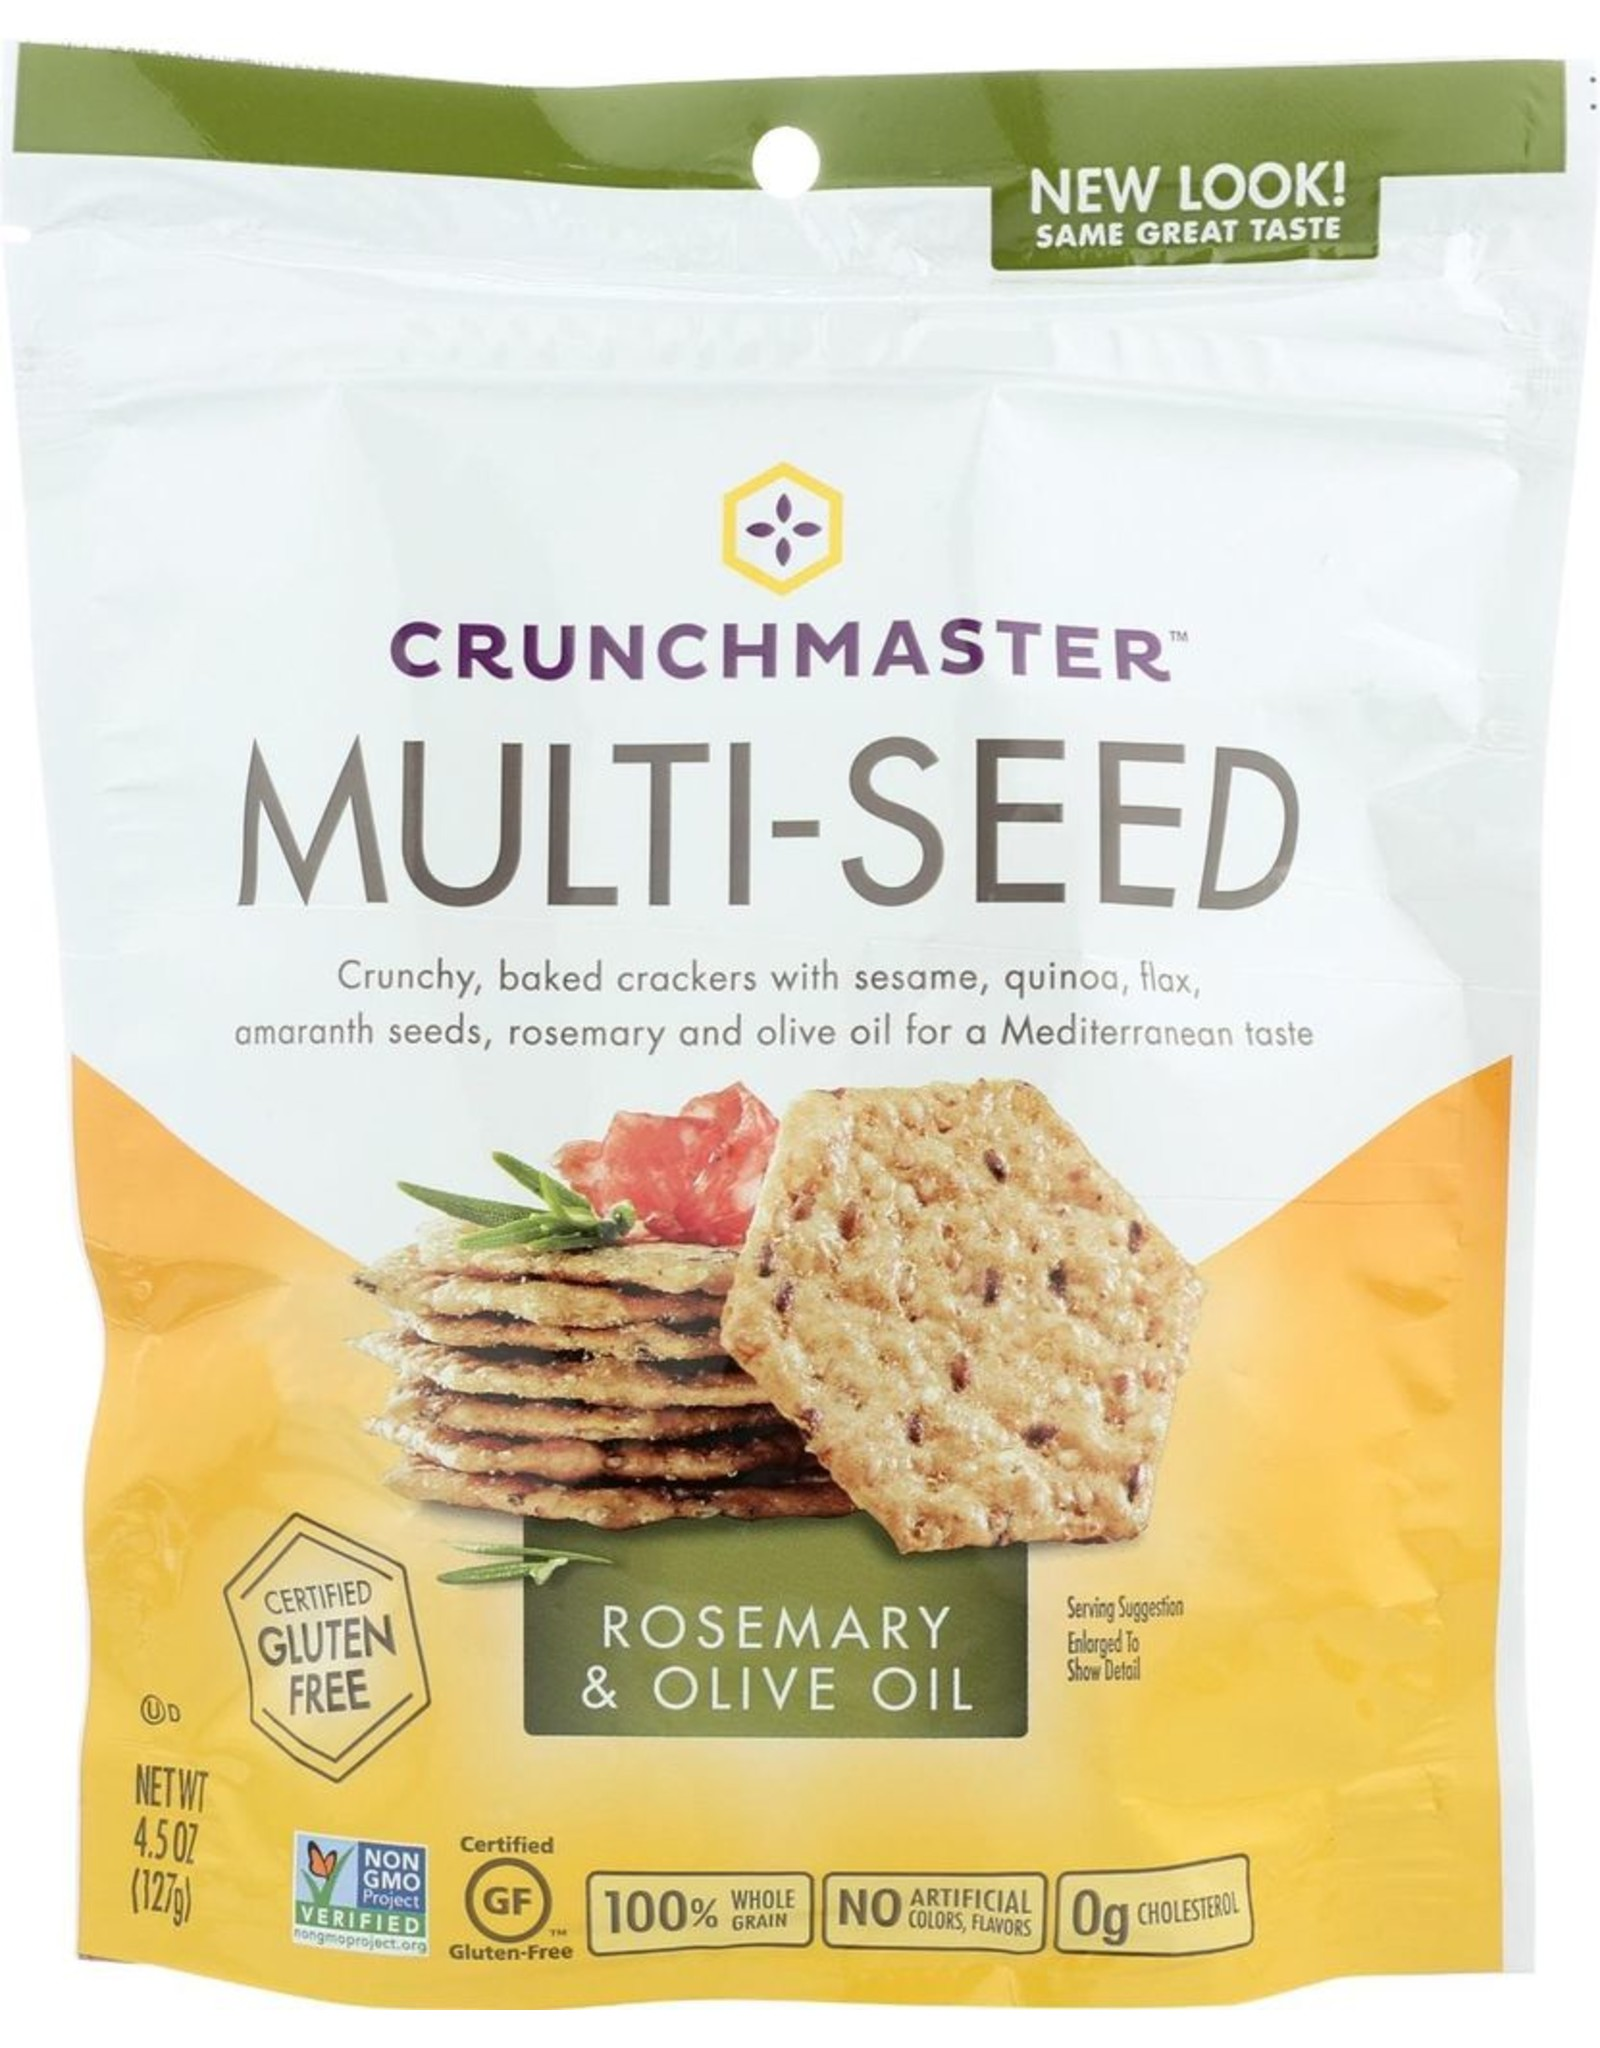 Specialty Foods Crunchmaster, Rosemary & Olive, Multi Seed Crackers, 4.5oz.